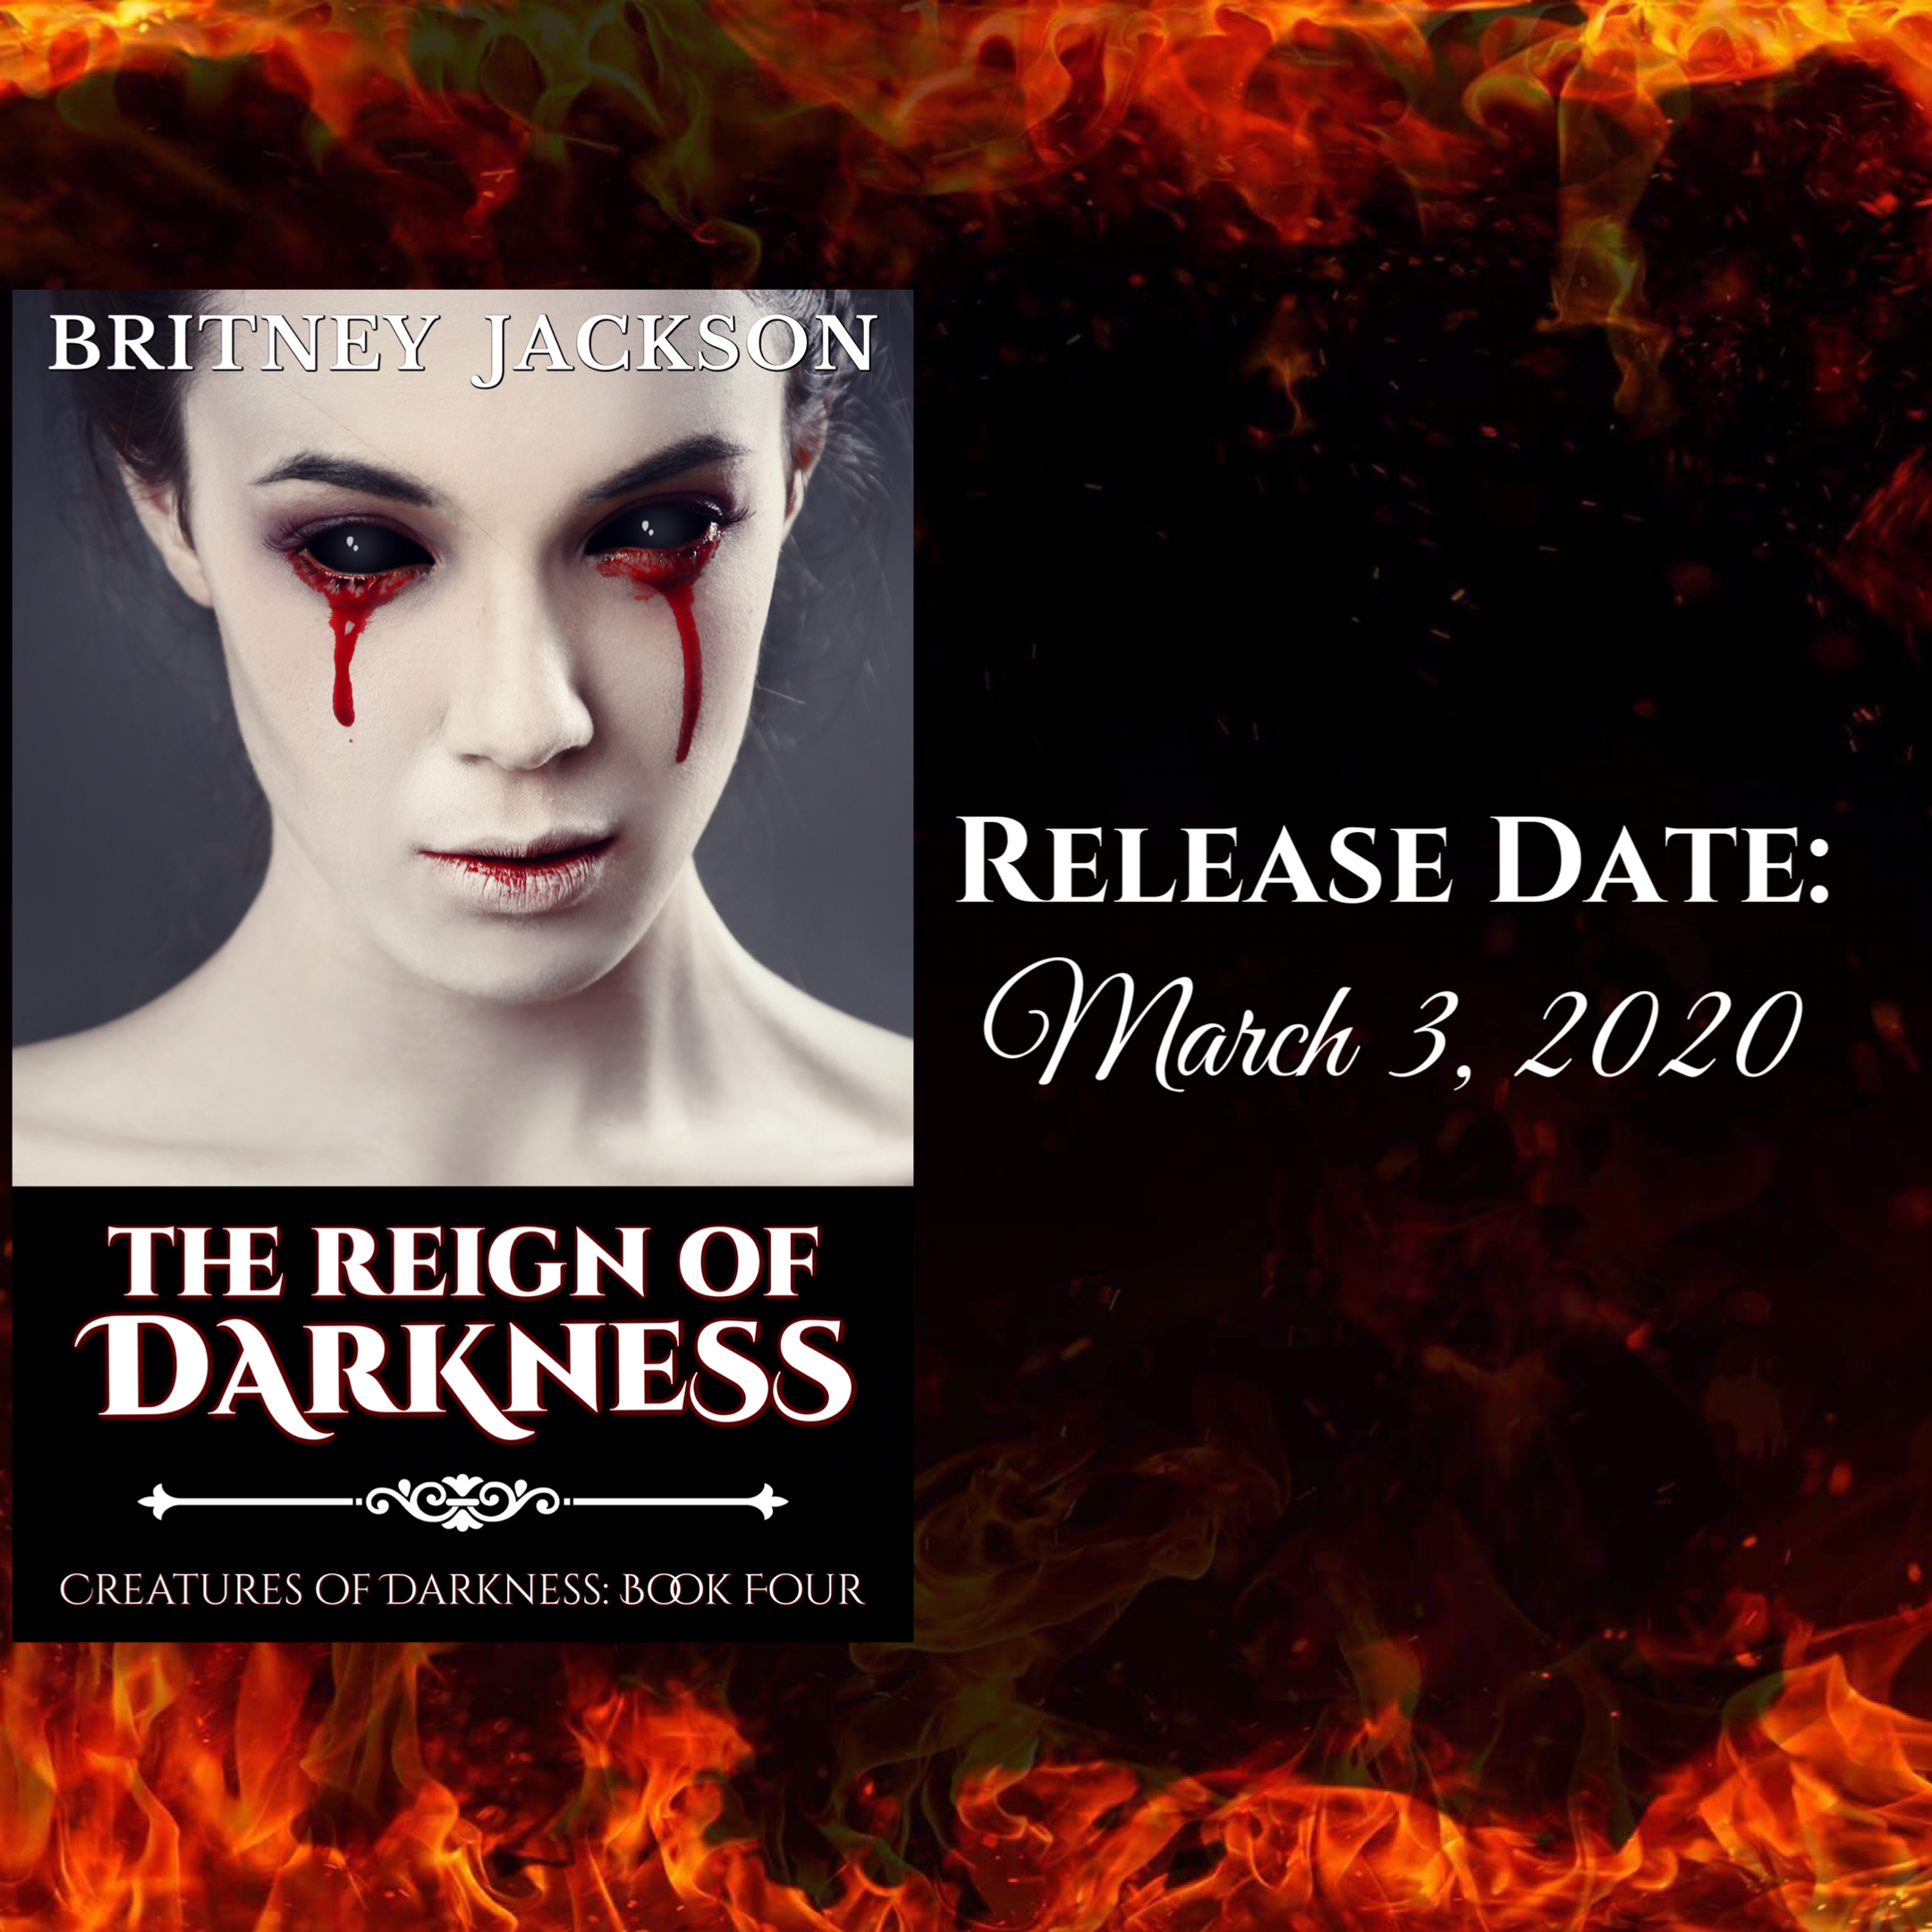 Release Date for THE REIGN OF DARKNESS